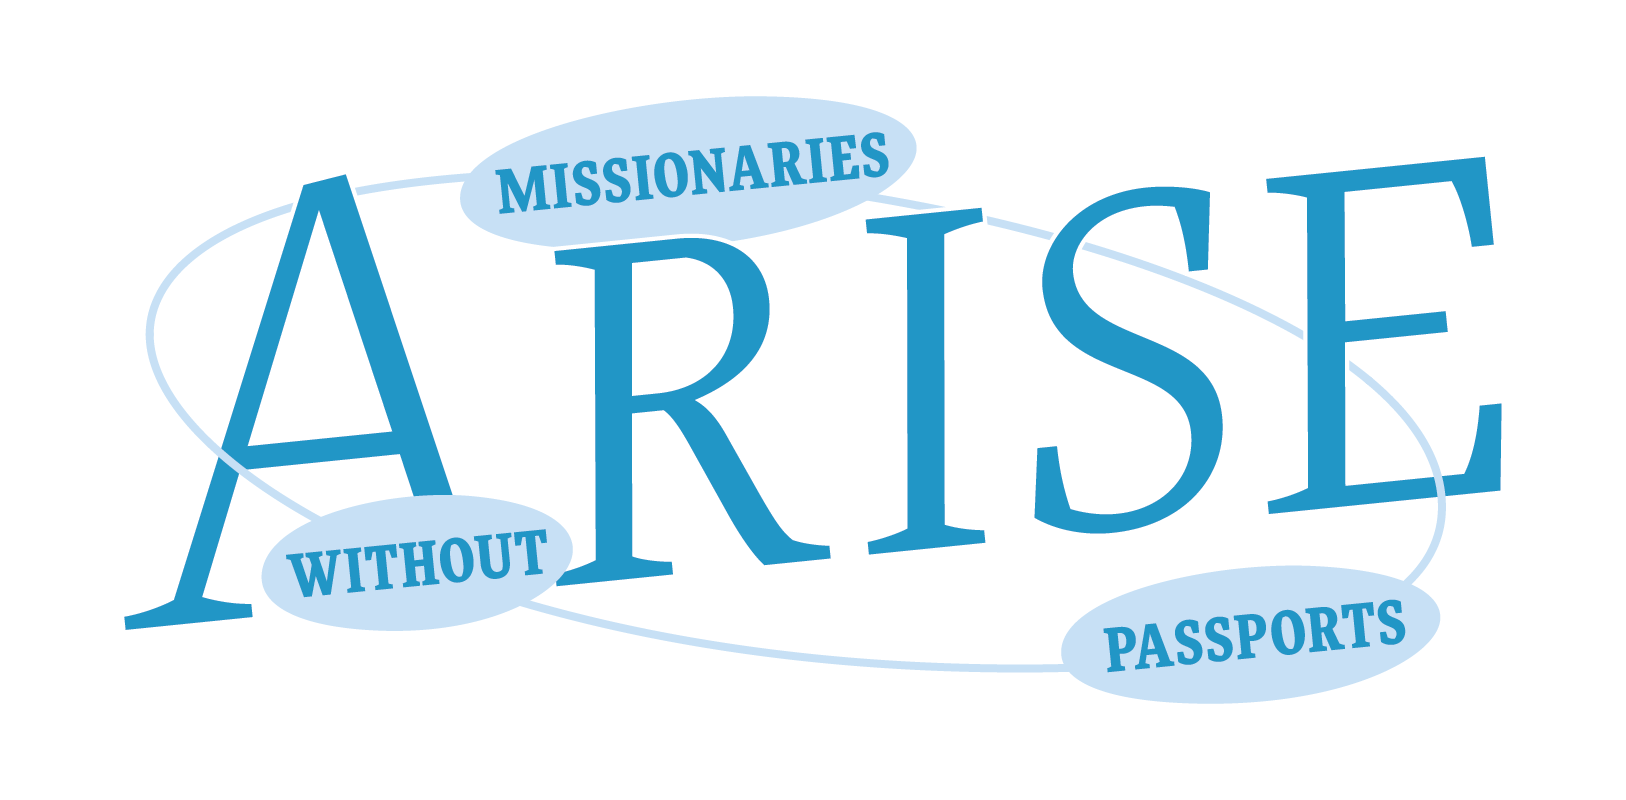 Arise - Missionaries Without Passports